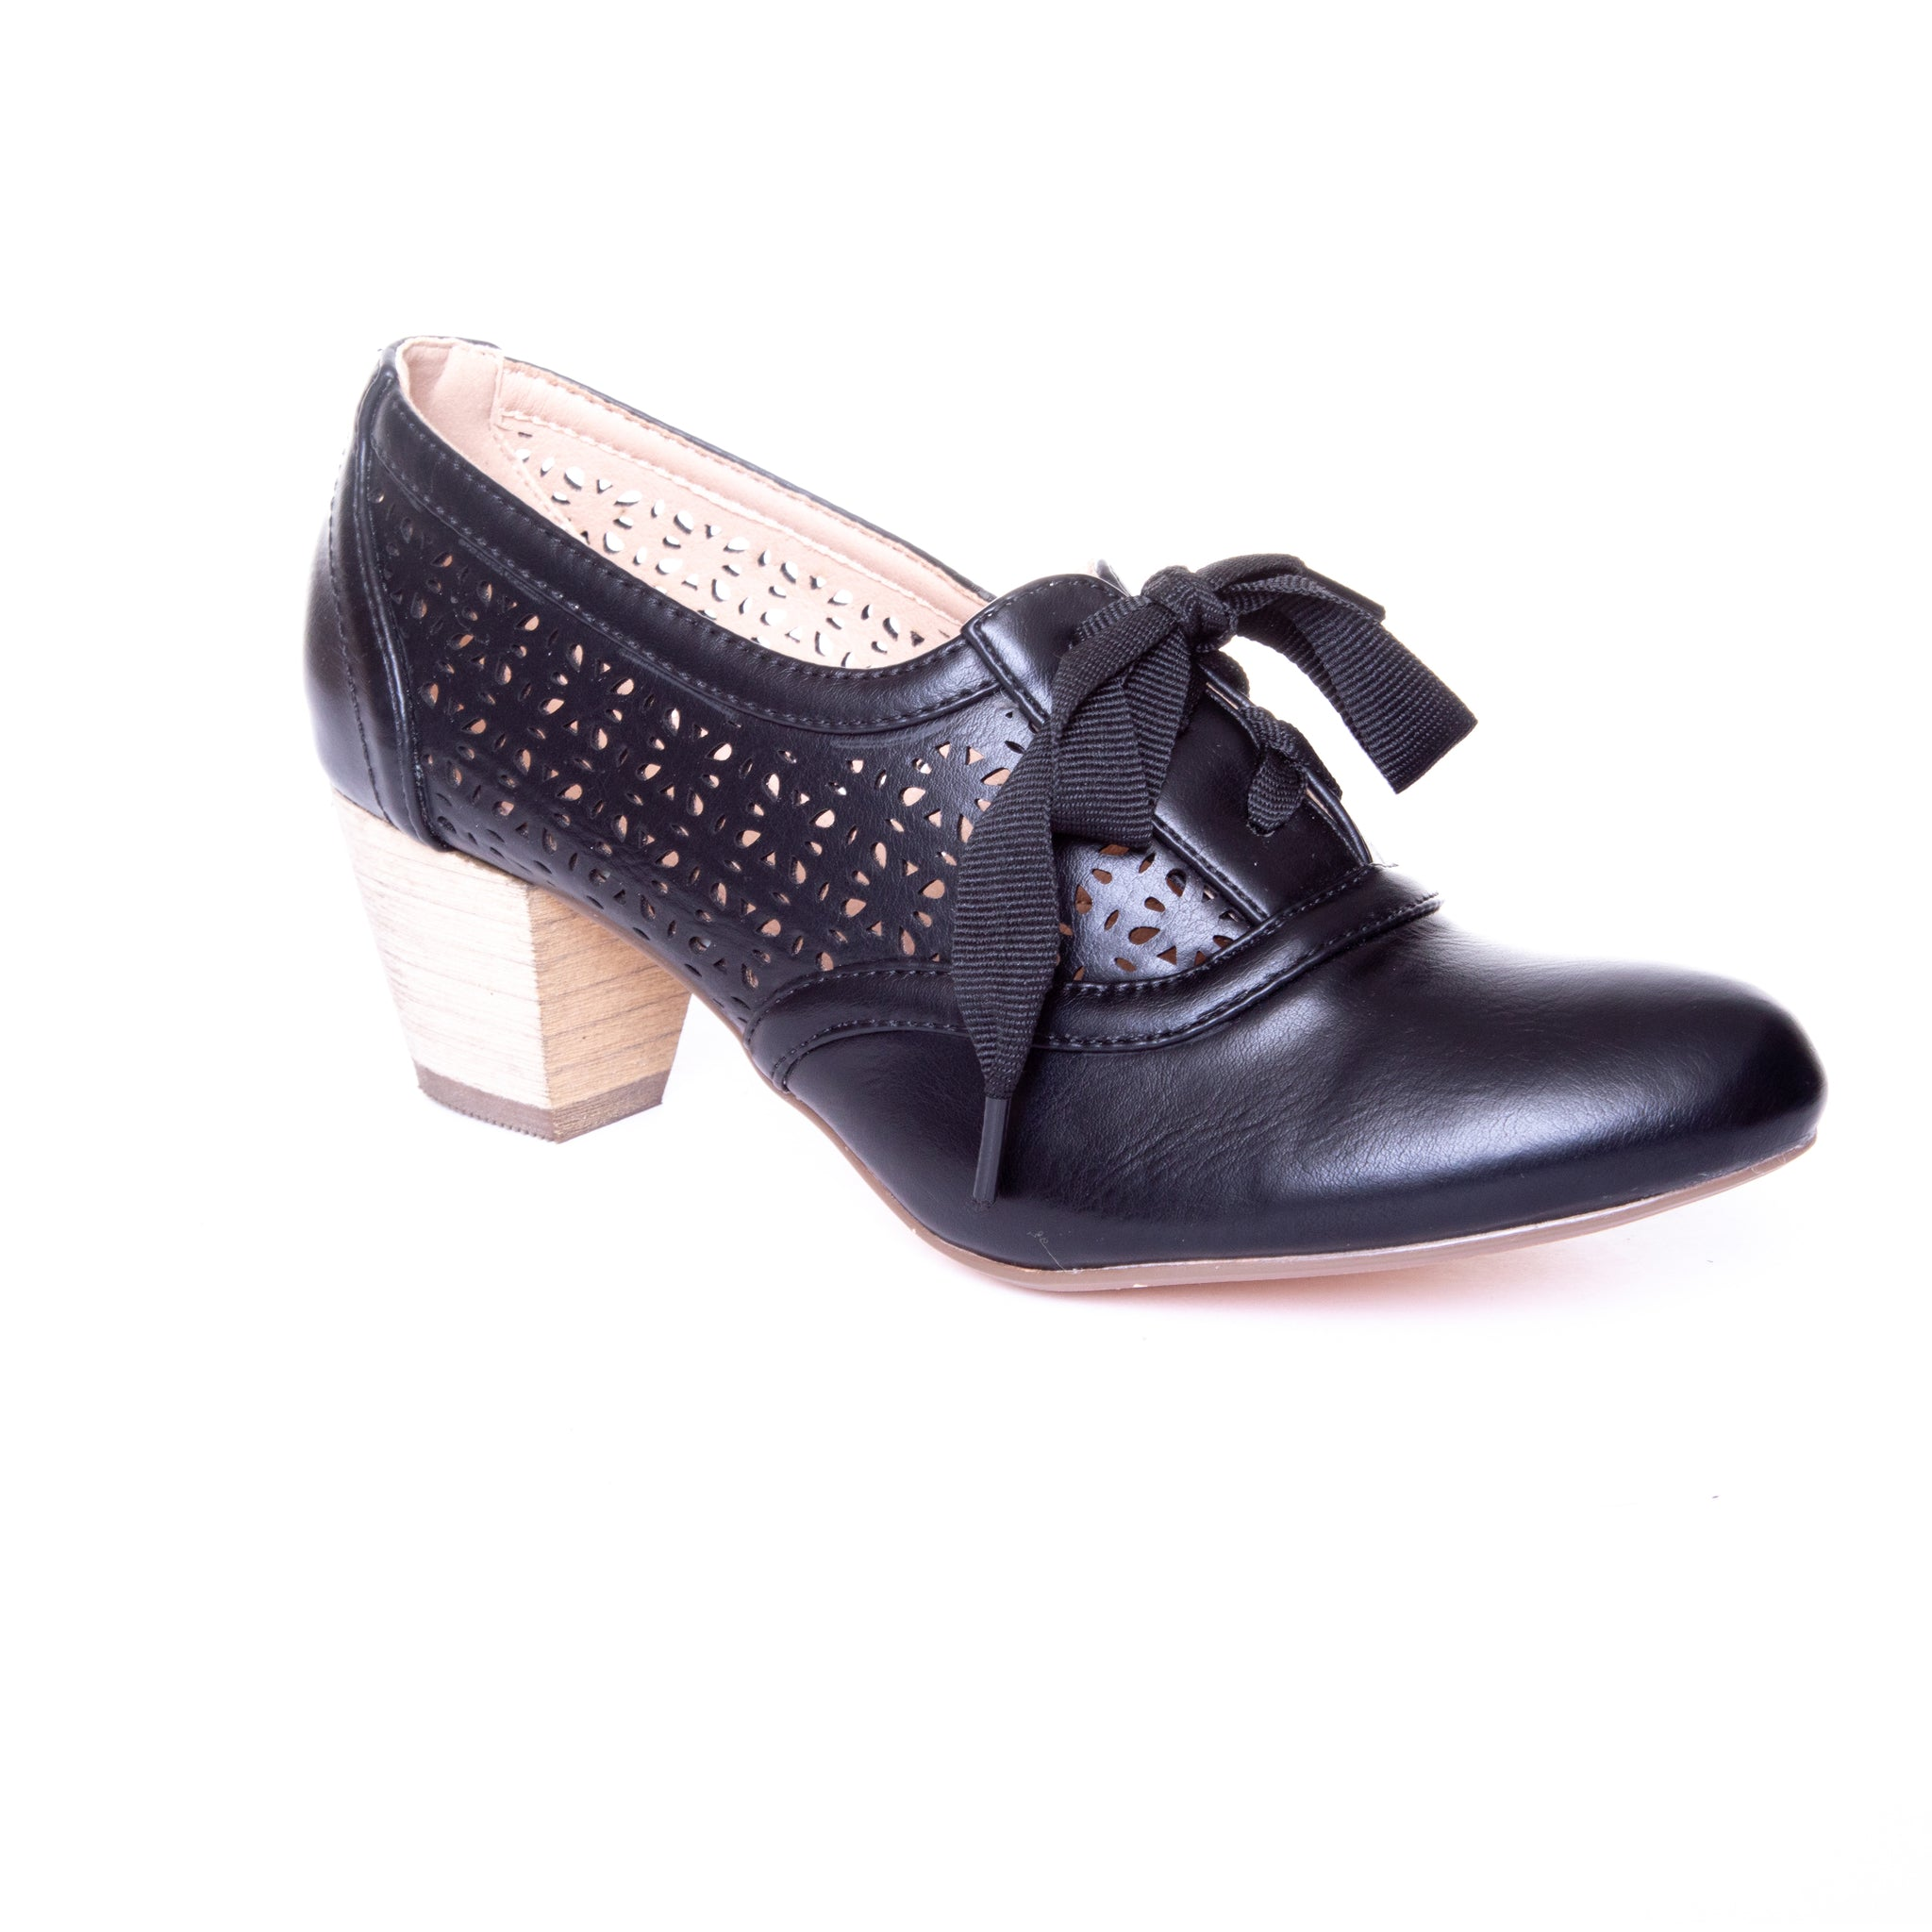 Selena by Dolce Nome | Lace Up Oxford Pumps in Black (main view)